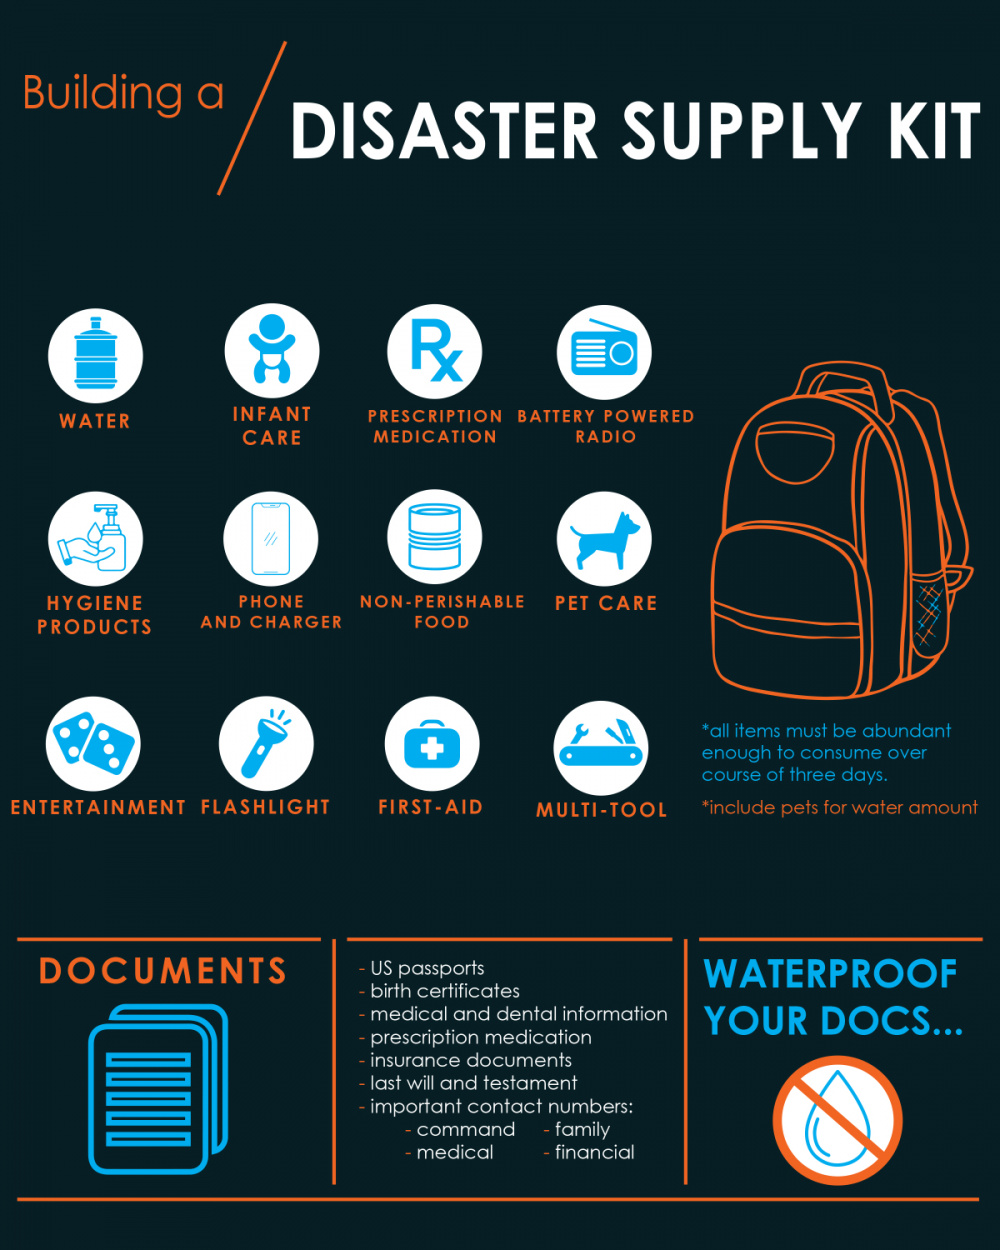 Disaster Supply Kit Infographic